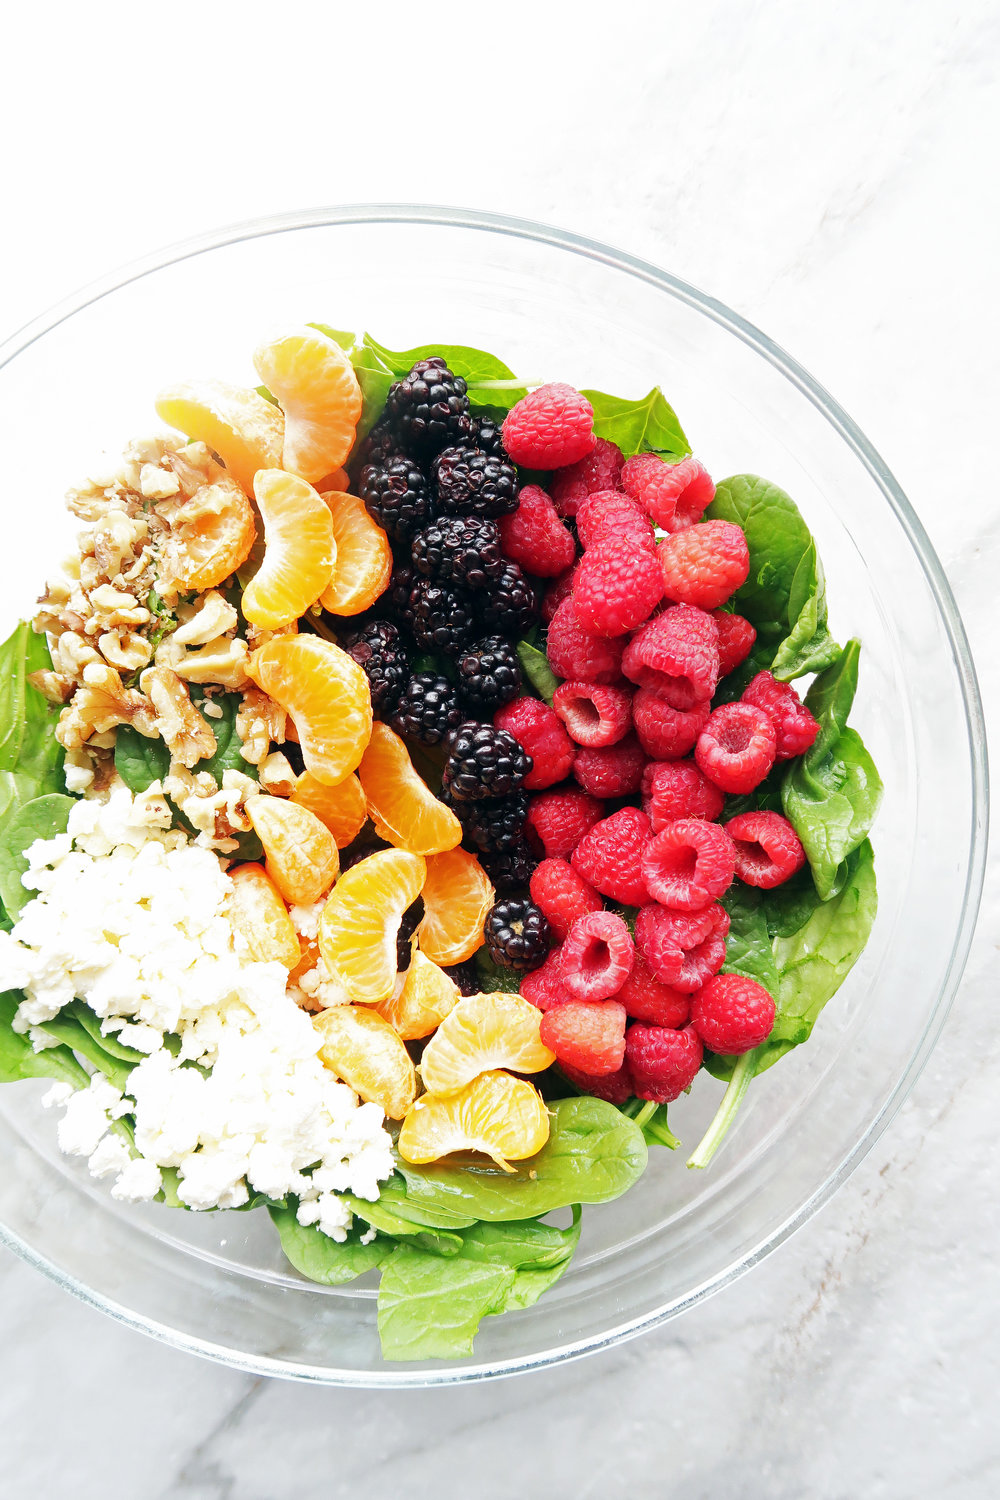 A bowl of spinach, blackberries, raspberries, mandarin oranges, walnuts, and feta.